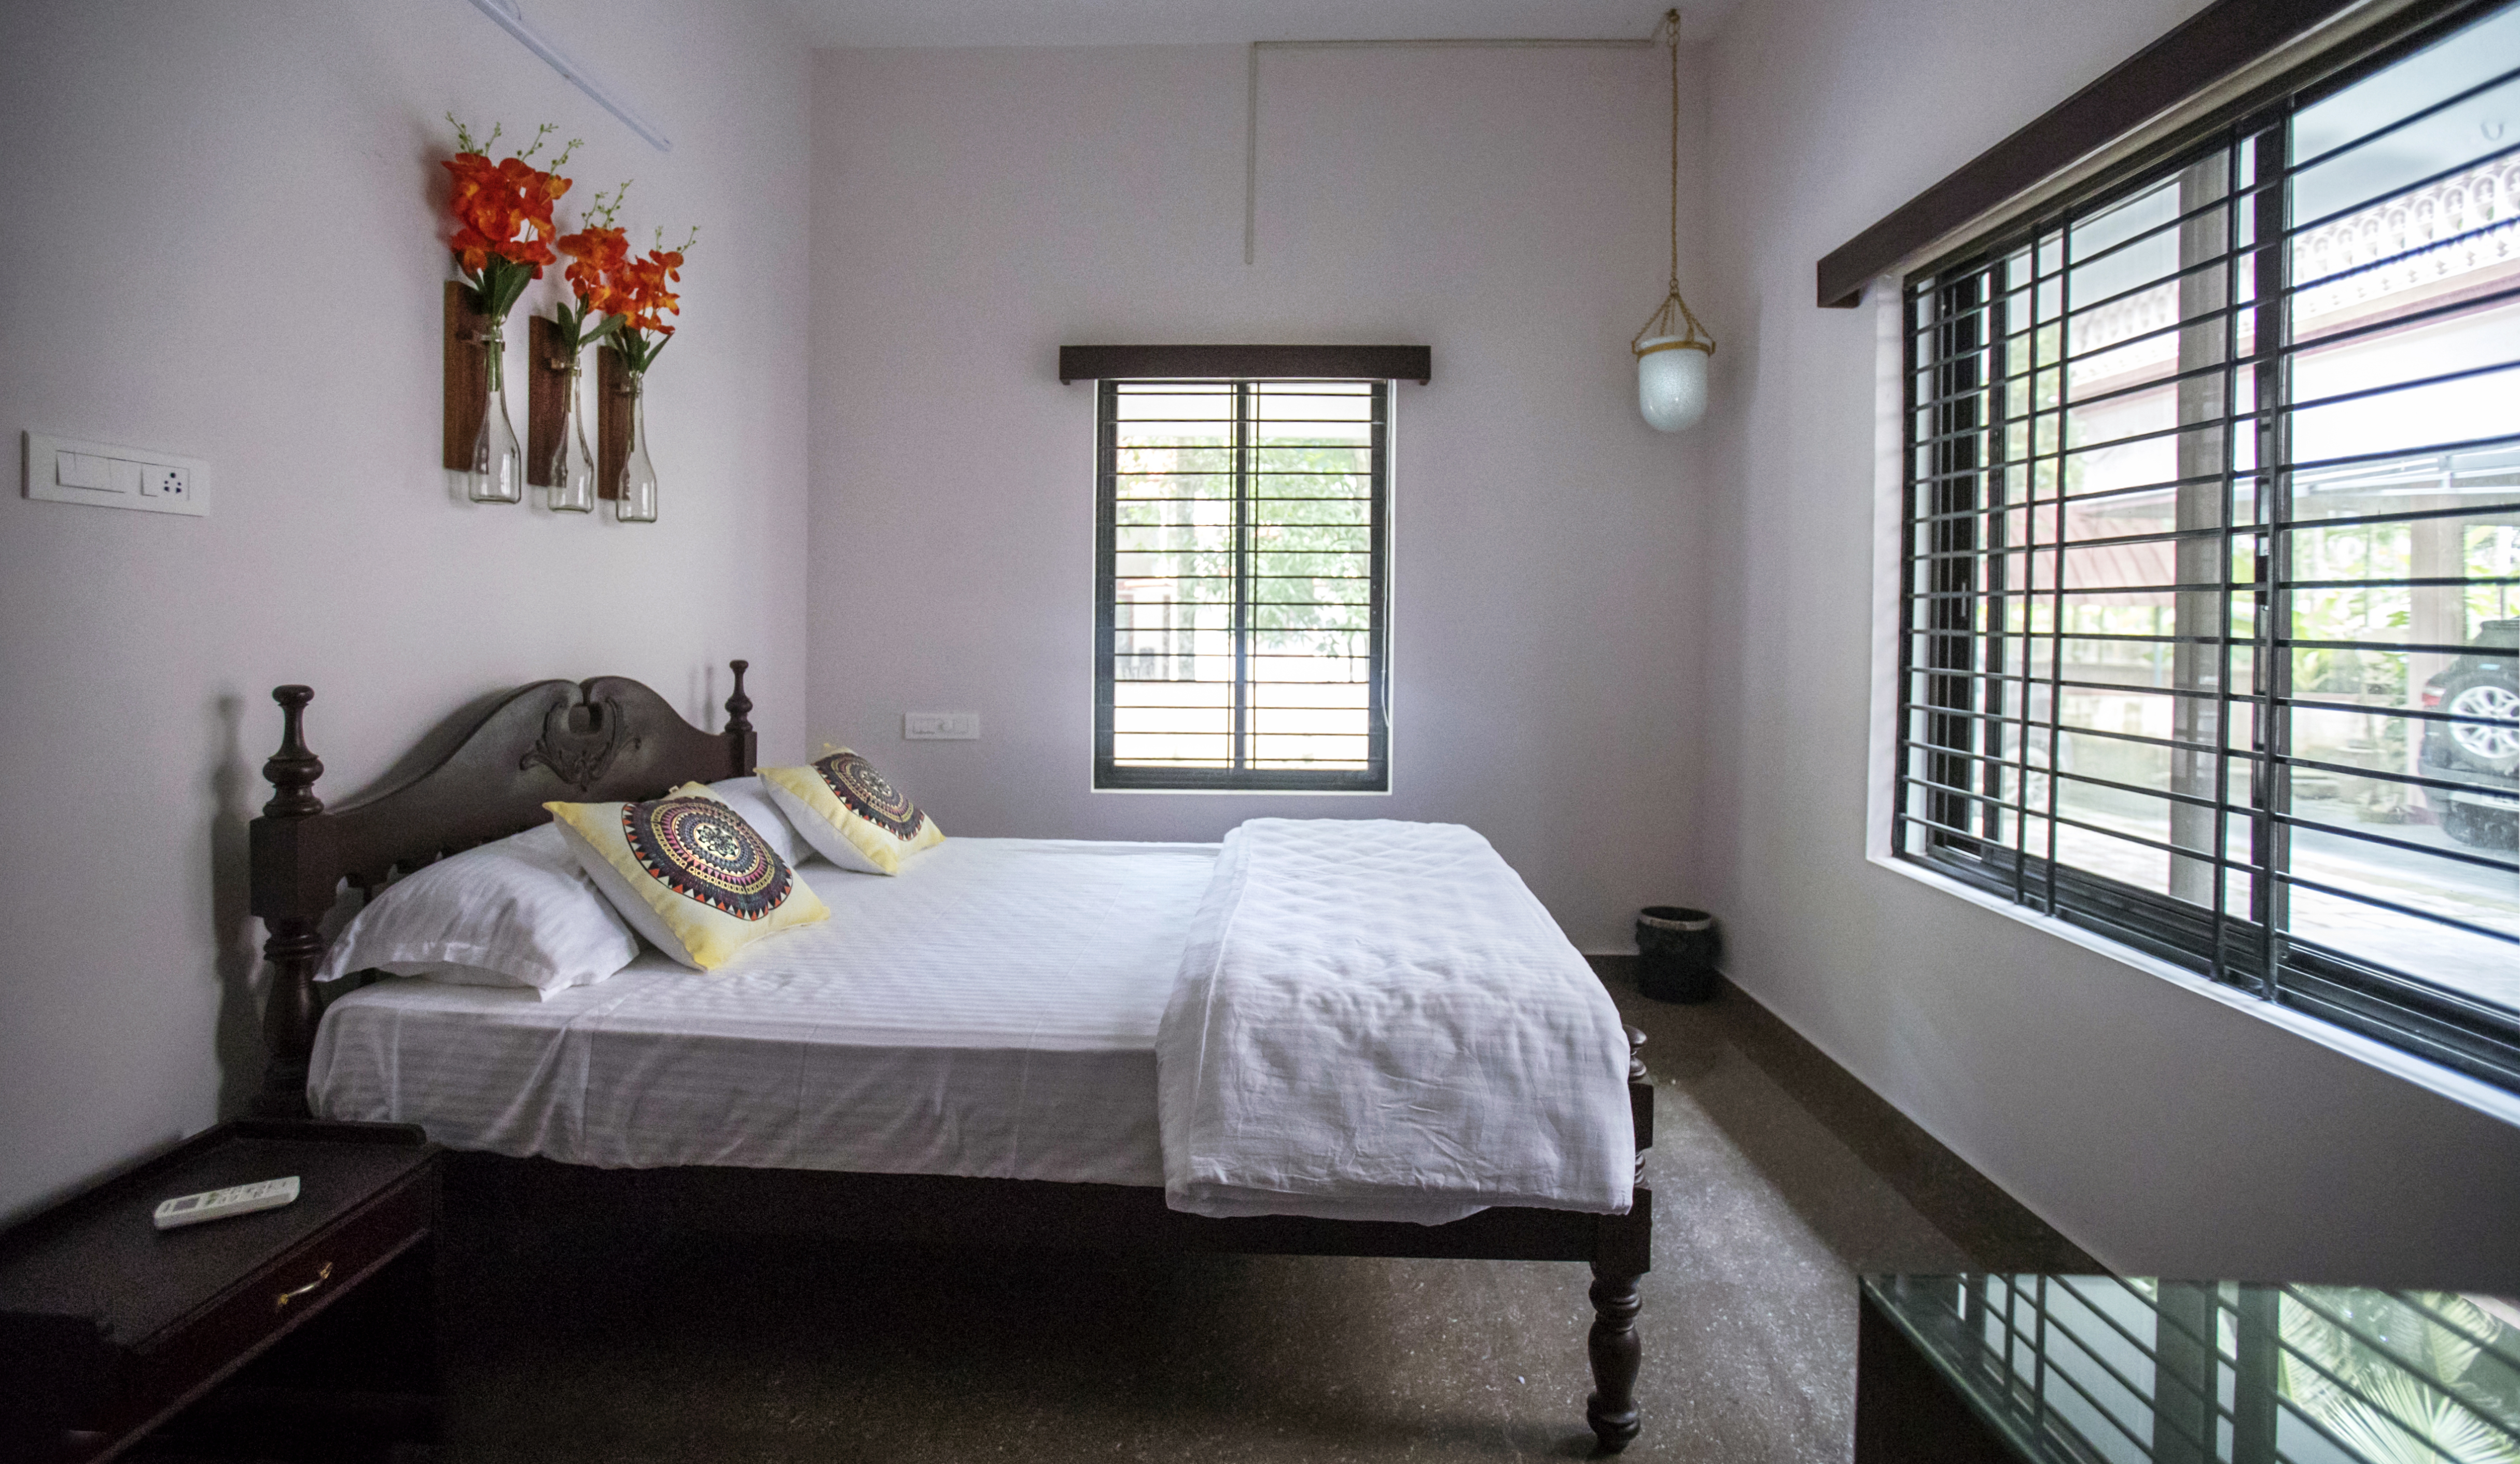 One Bedroom Apartment A1 Flats For Rent In Ernakulam Kerala India